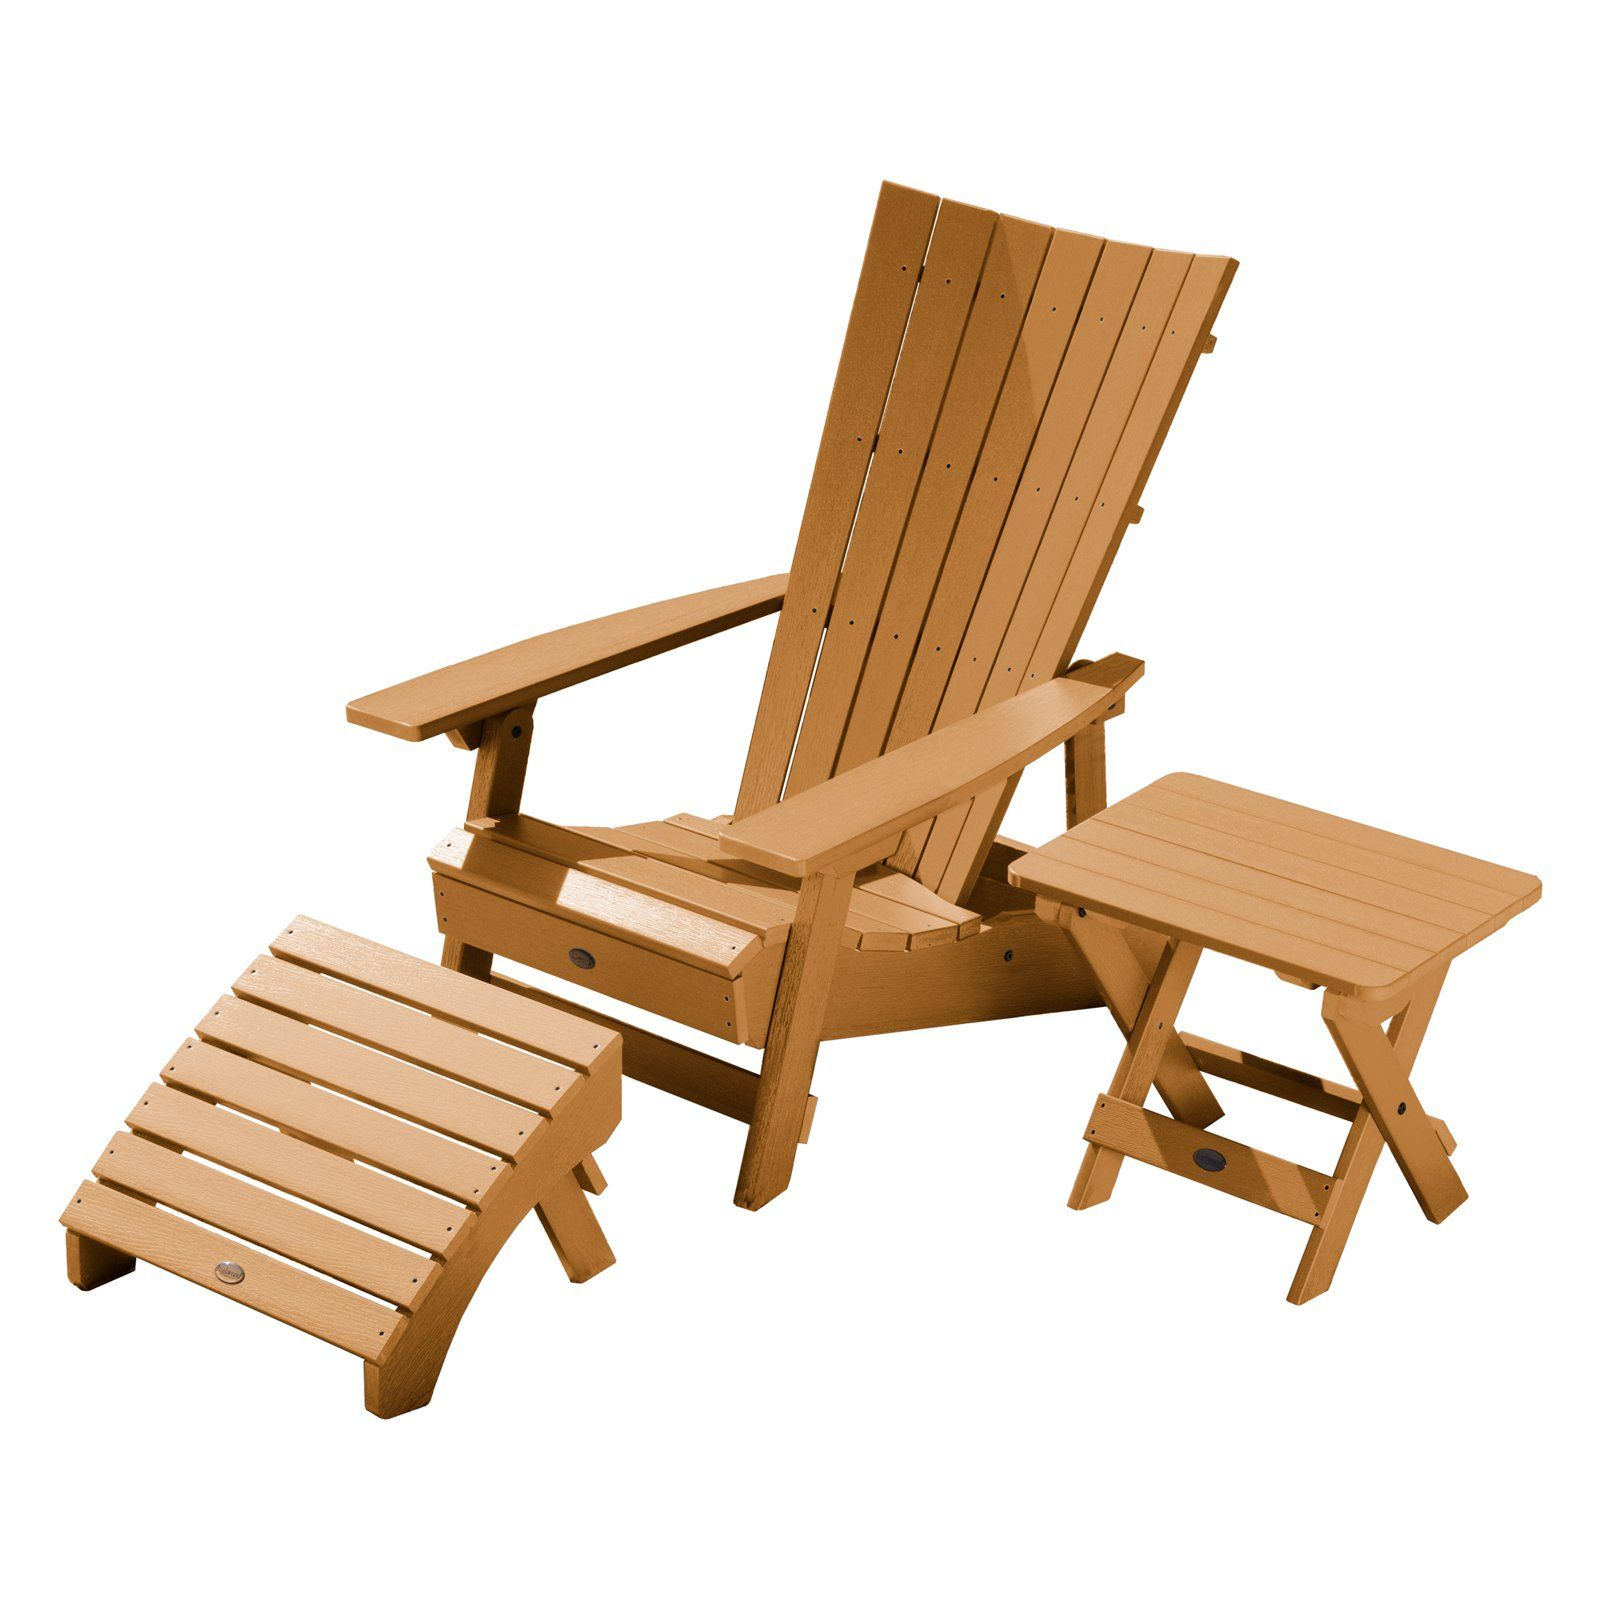 Outdoor Highwood Usa Manhattan Beach Adirondack Chair With Folding Side Table And Ottoman Toffee Outdoor Chairs Patio Chairs Ottoman Table